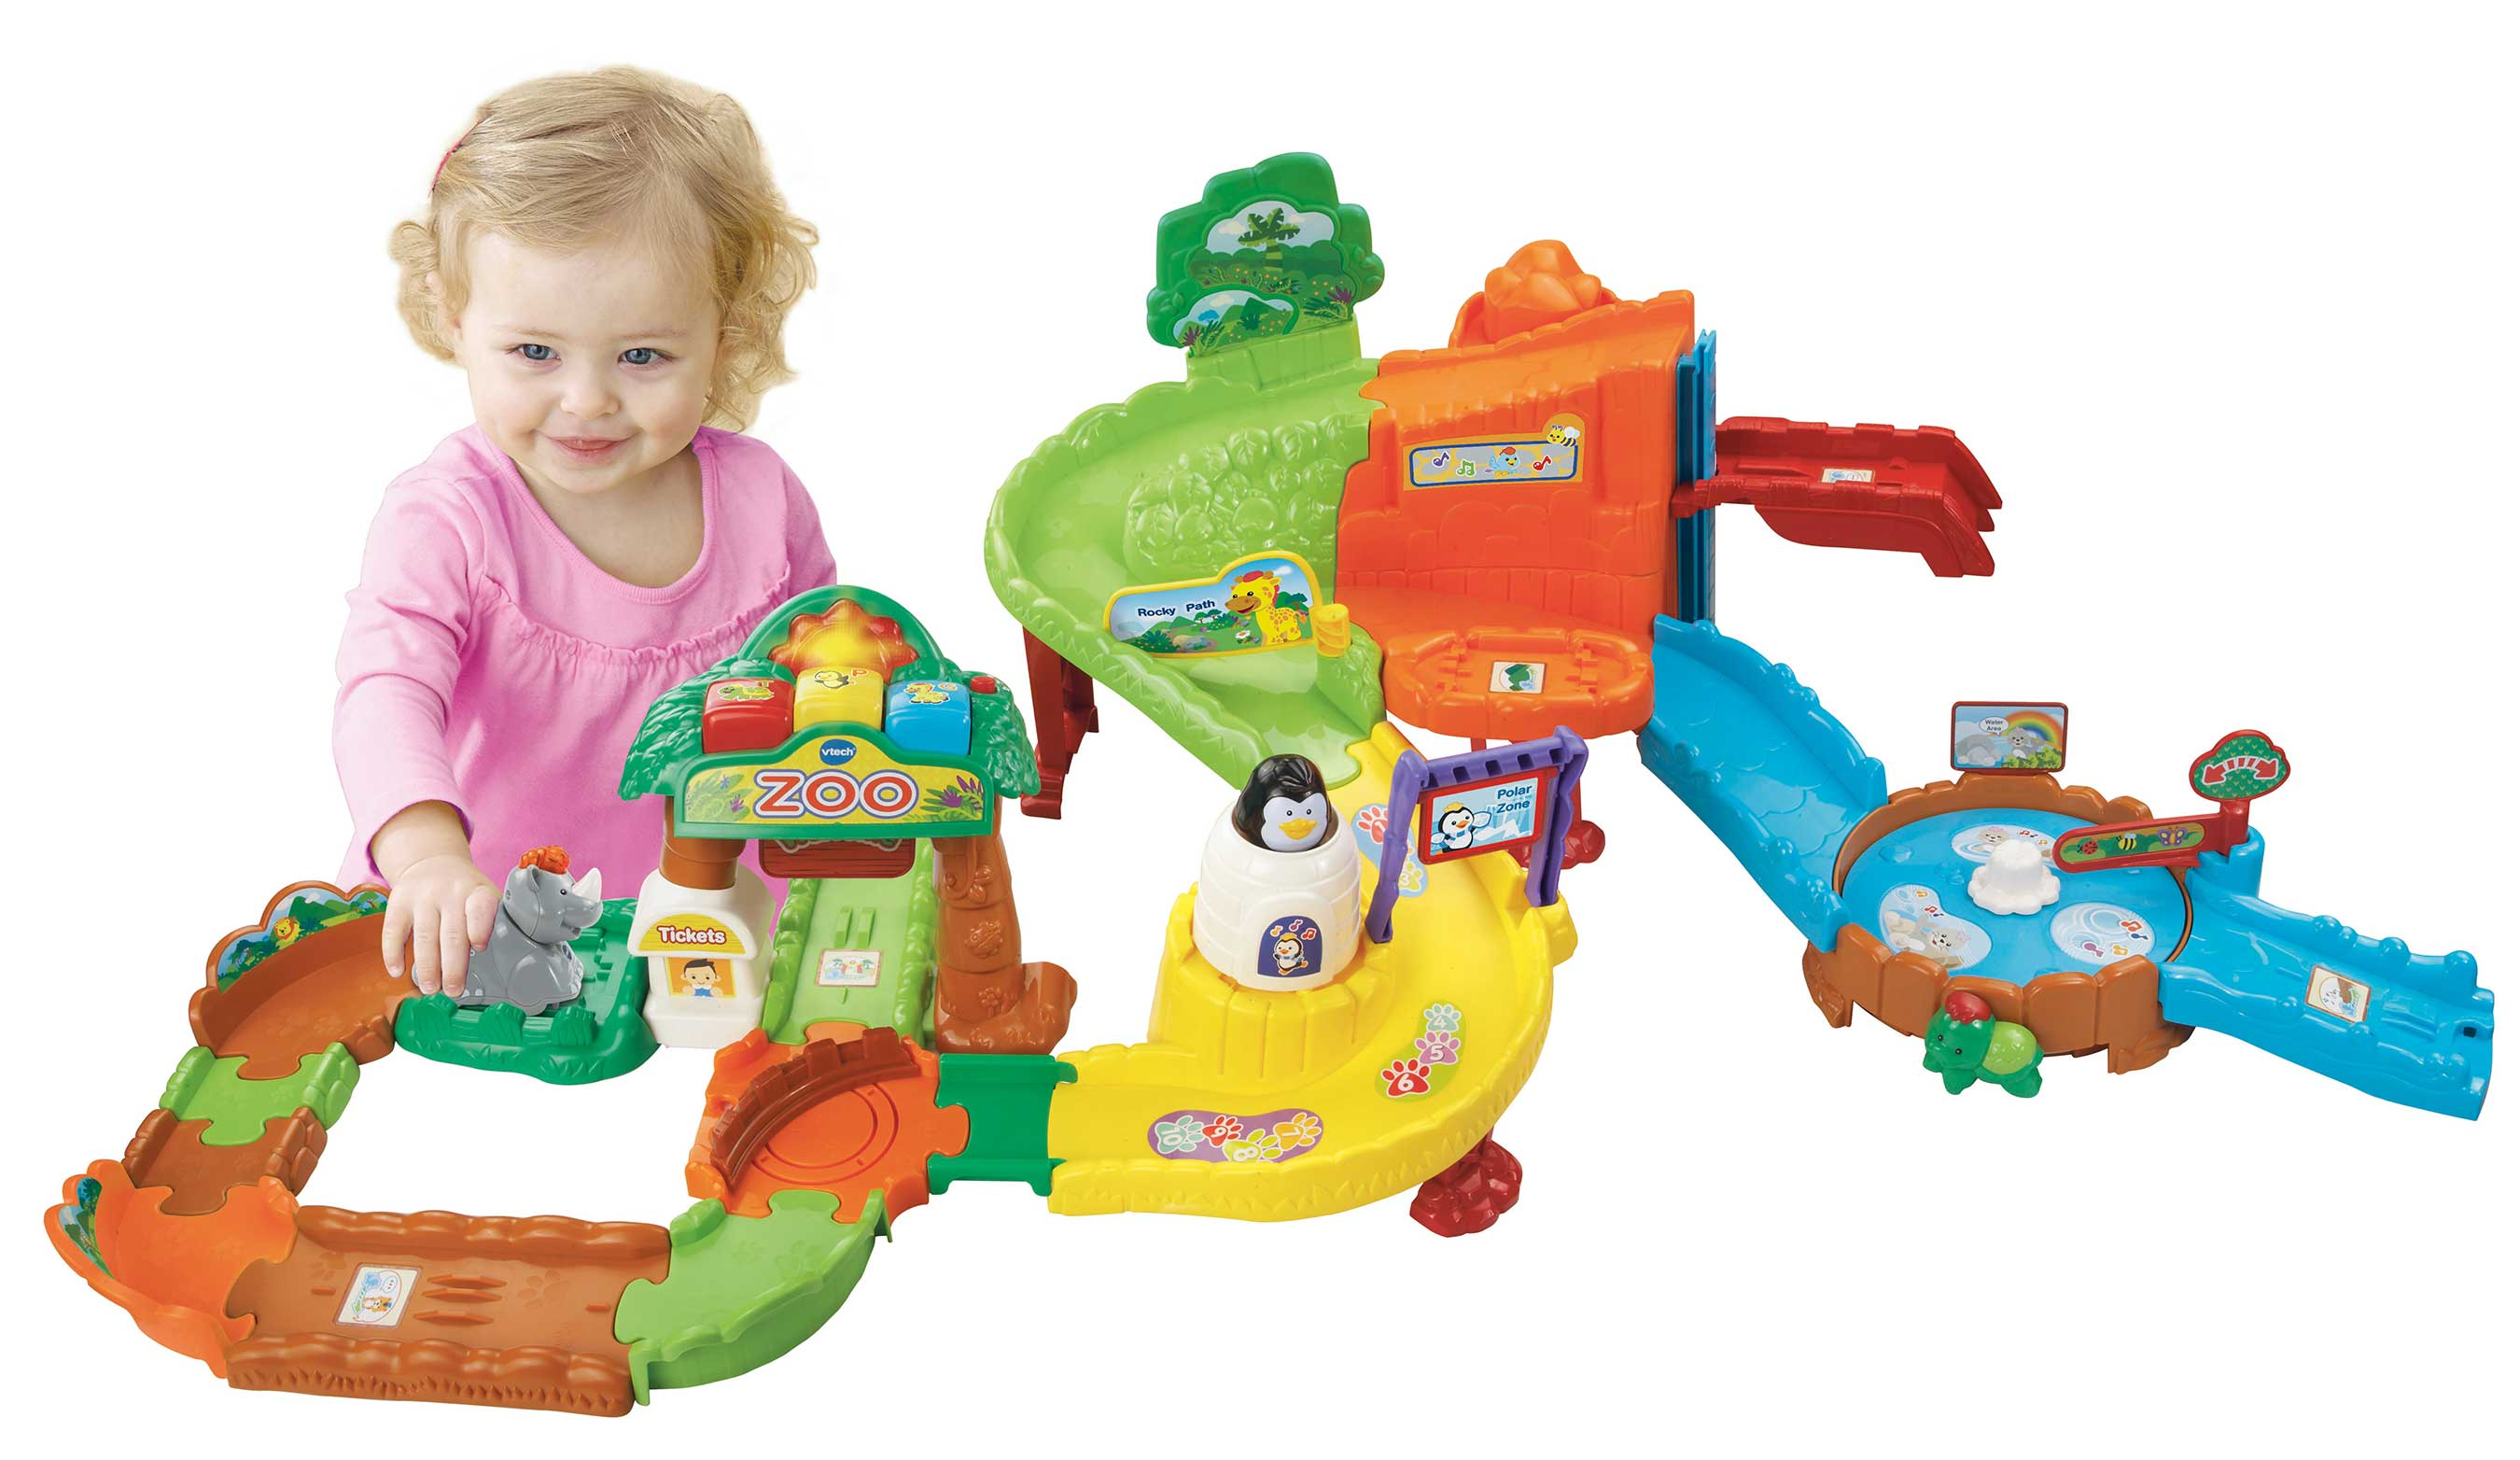 Toys By Brand : Vtech announces new go smart animals™ brand